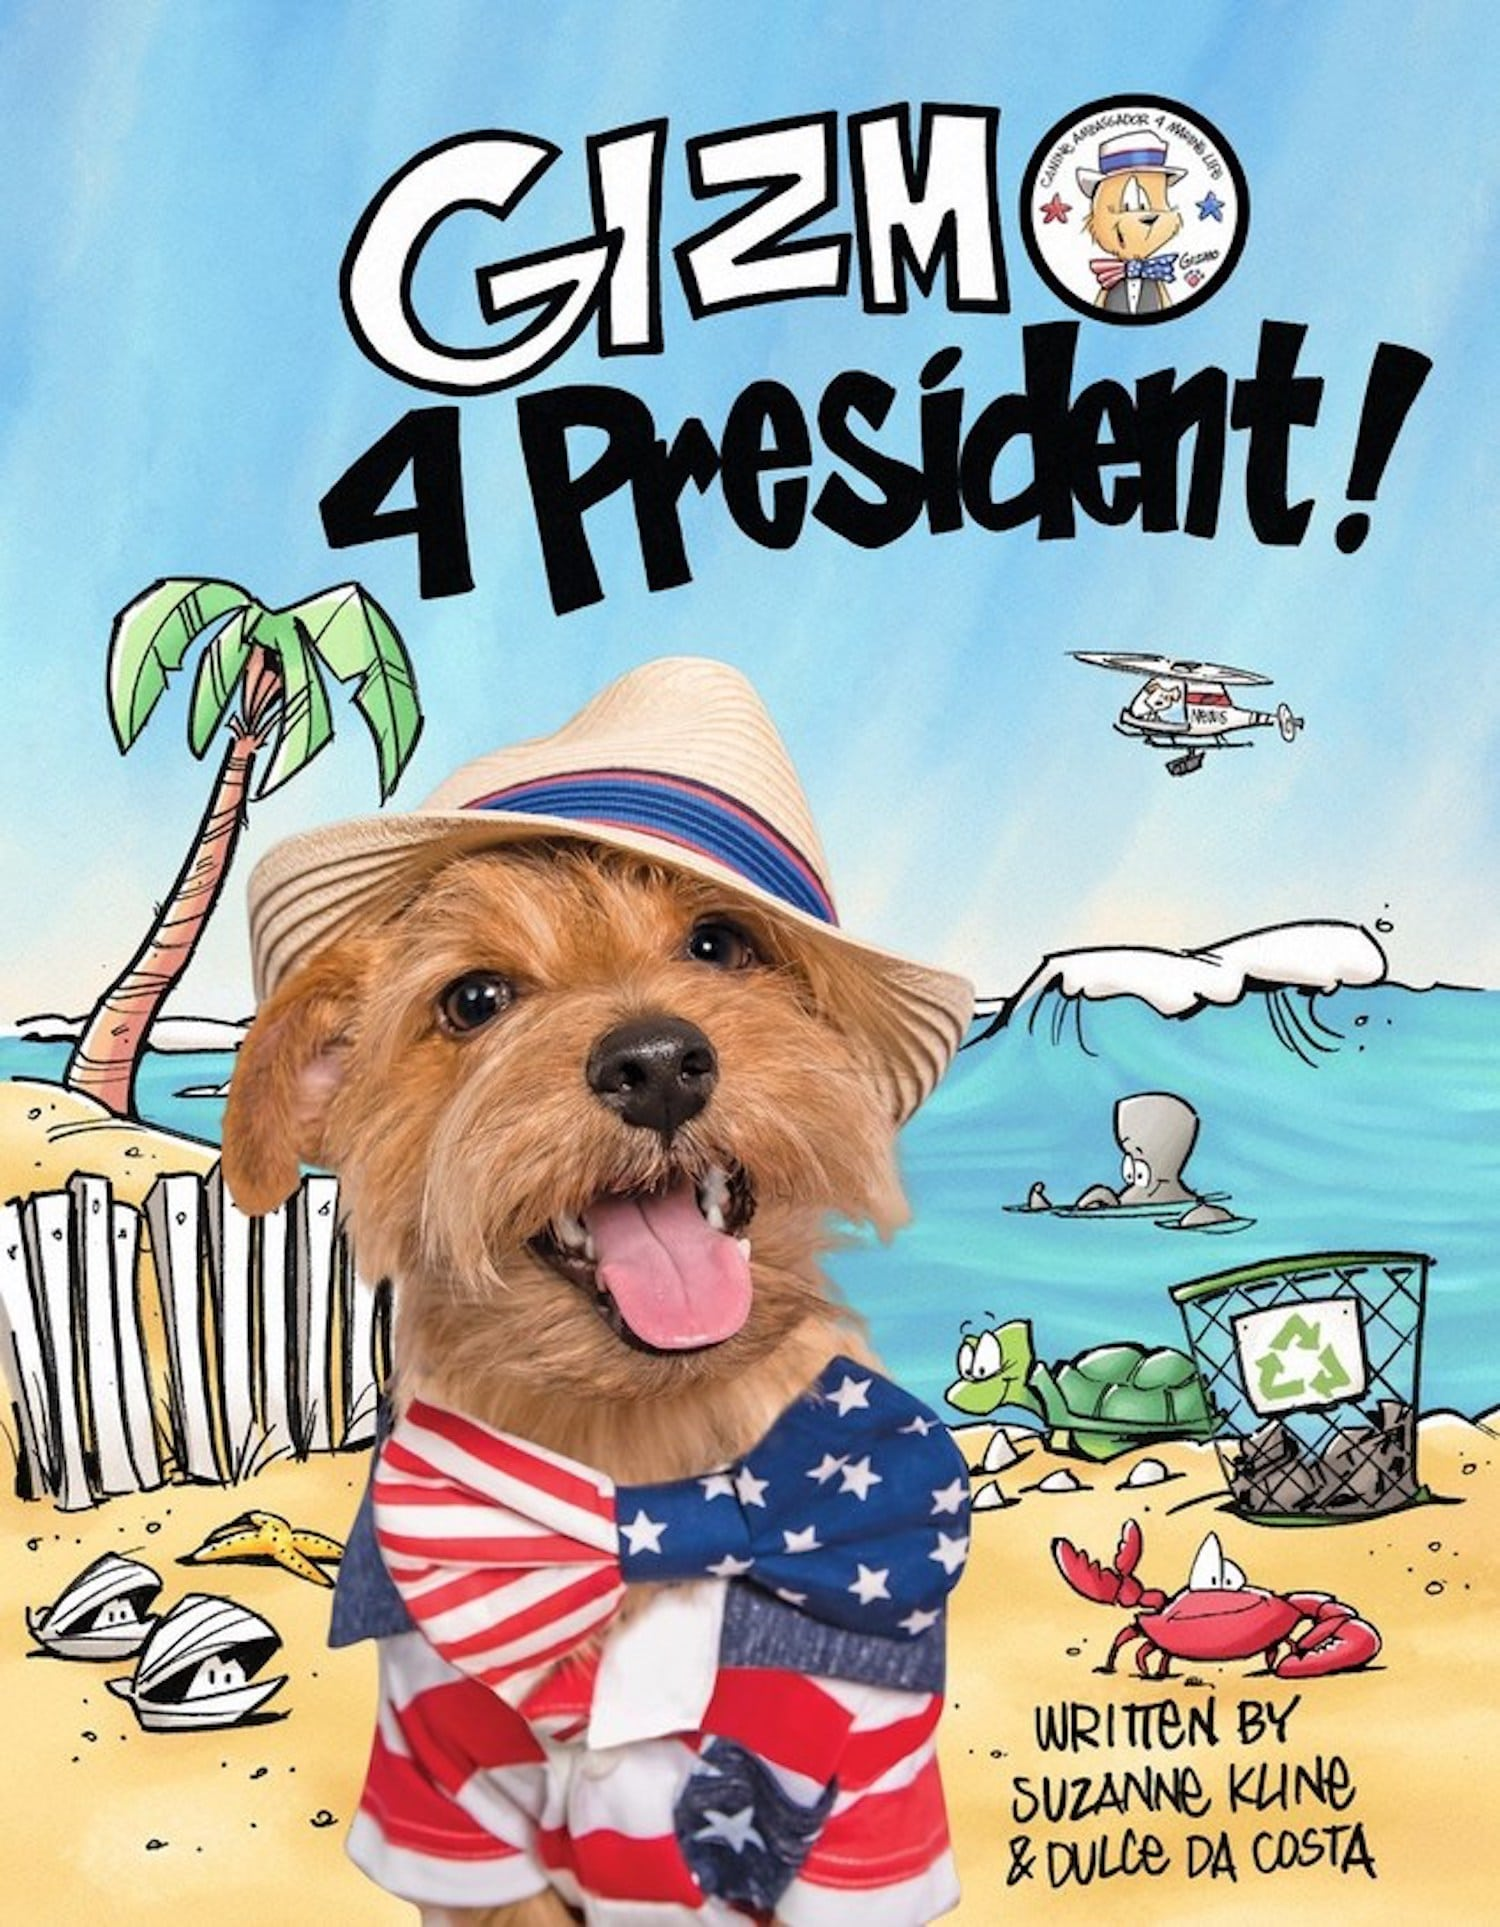 New children's book features Gizmo, a fun-loving surfing dog, and an election theme